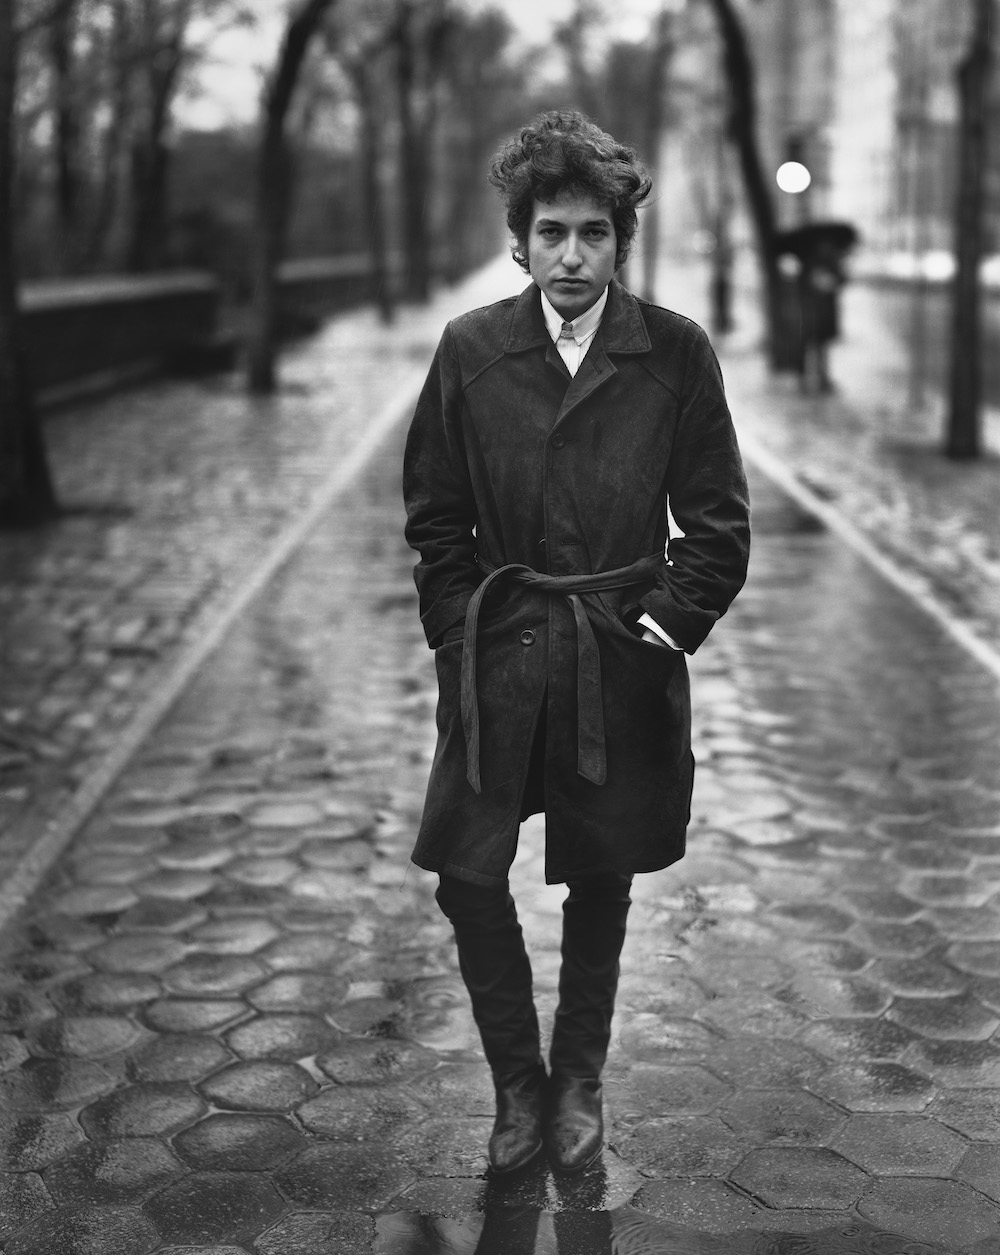 Bob Dylan, singer, New York City, February 10, 1965